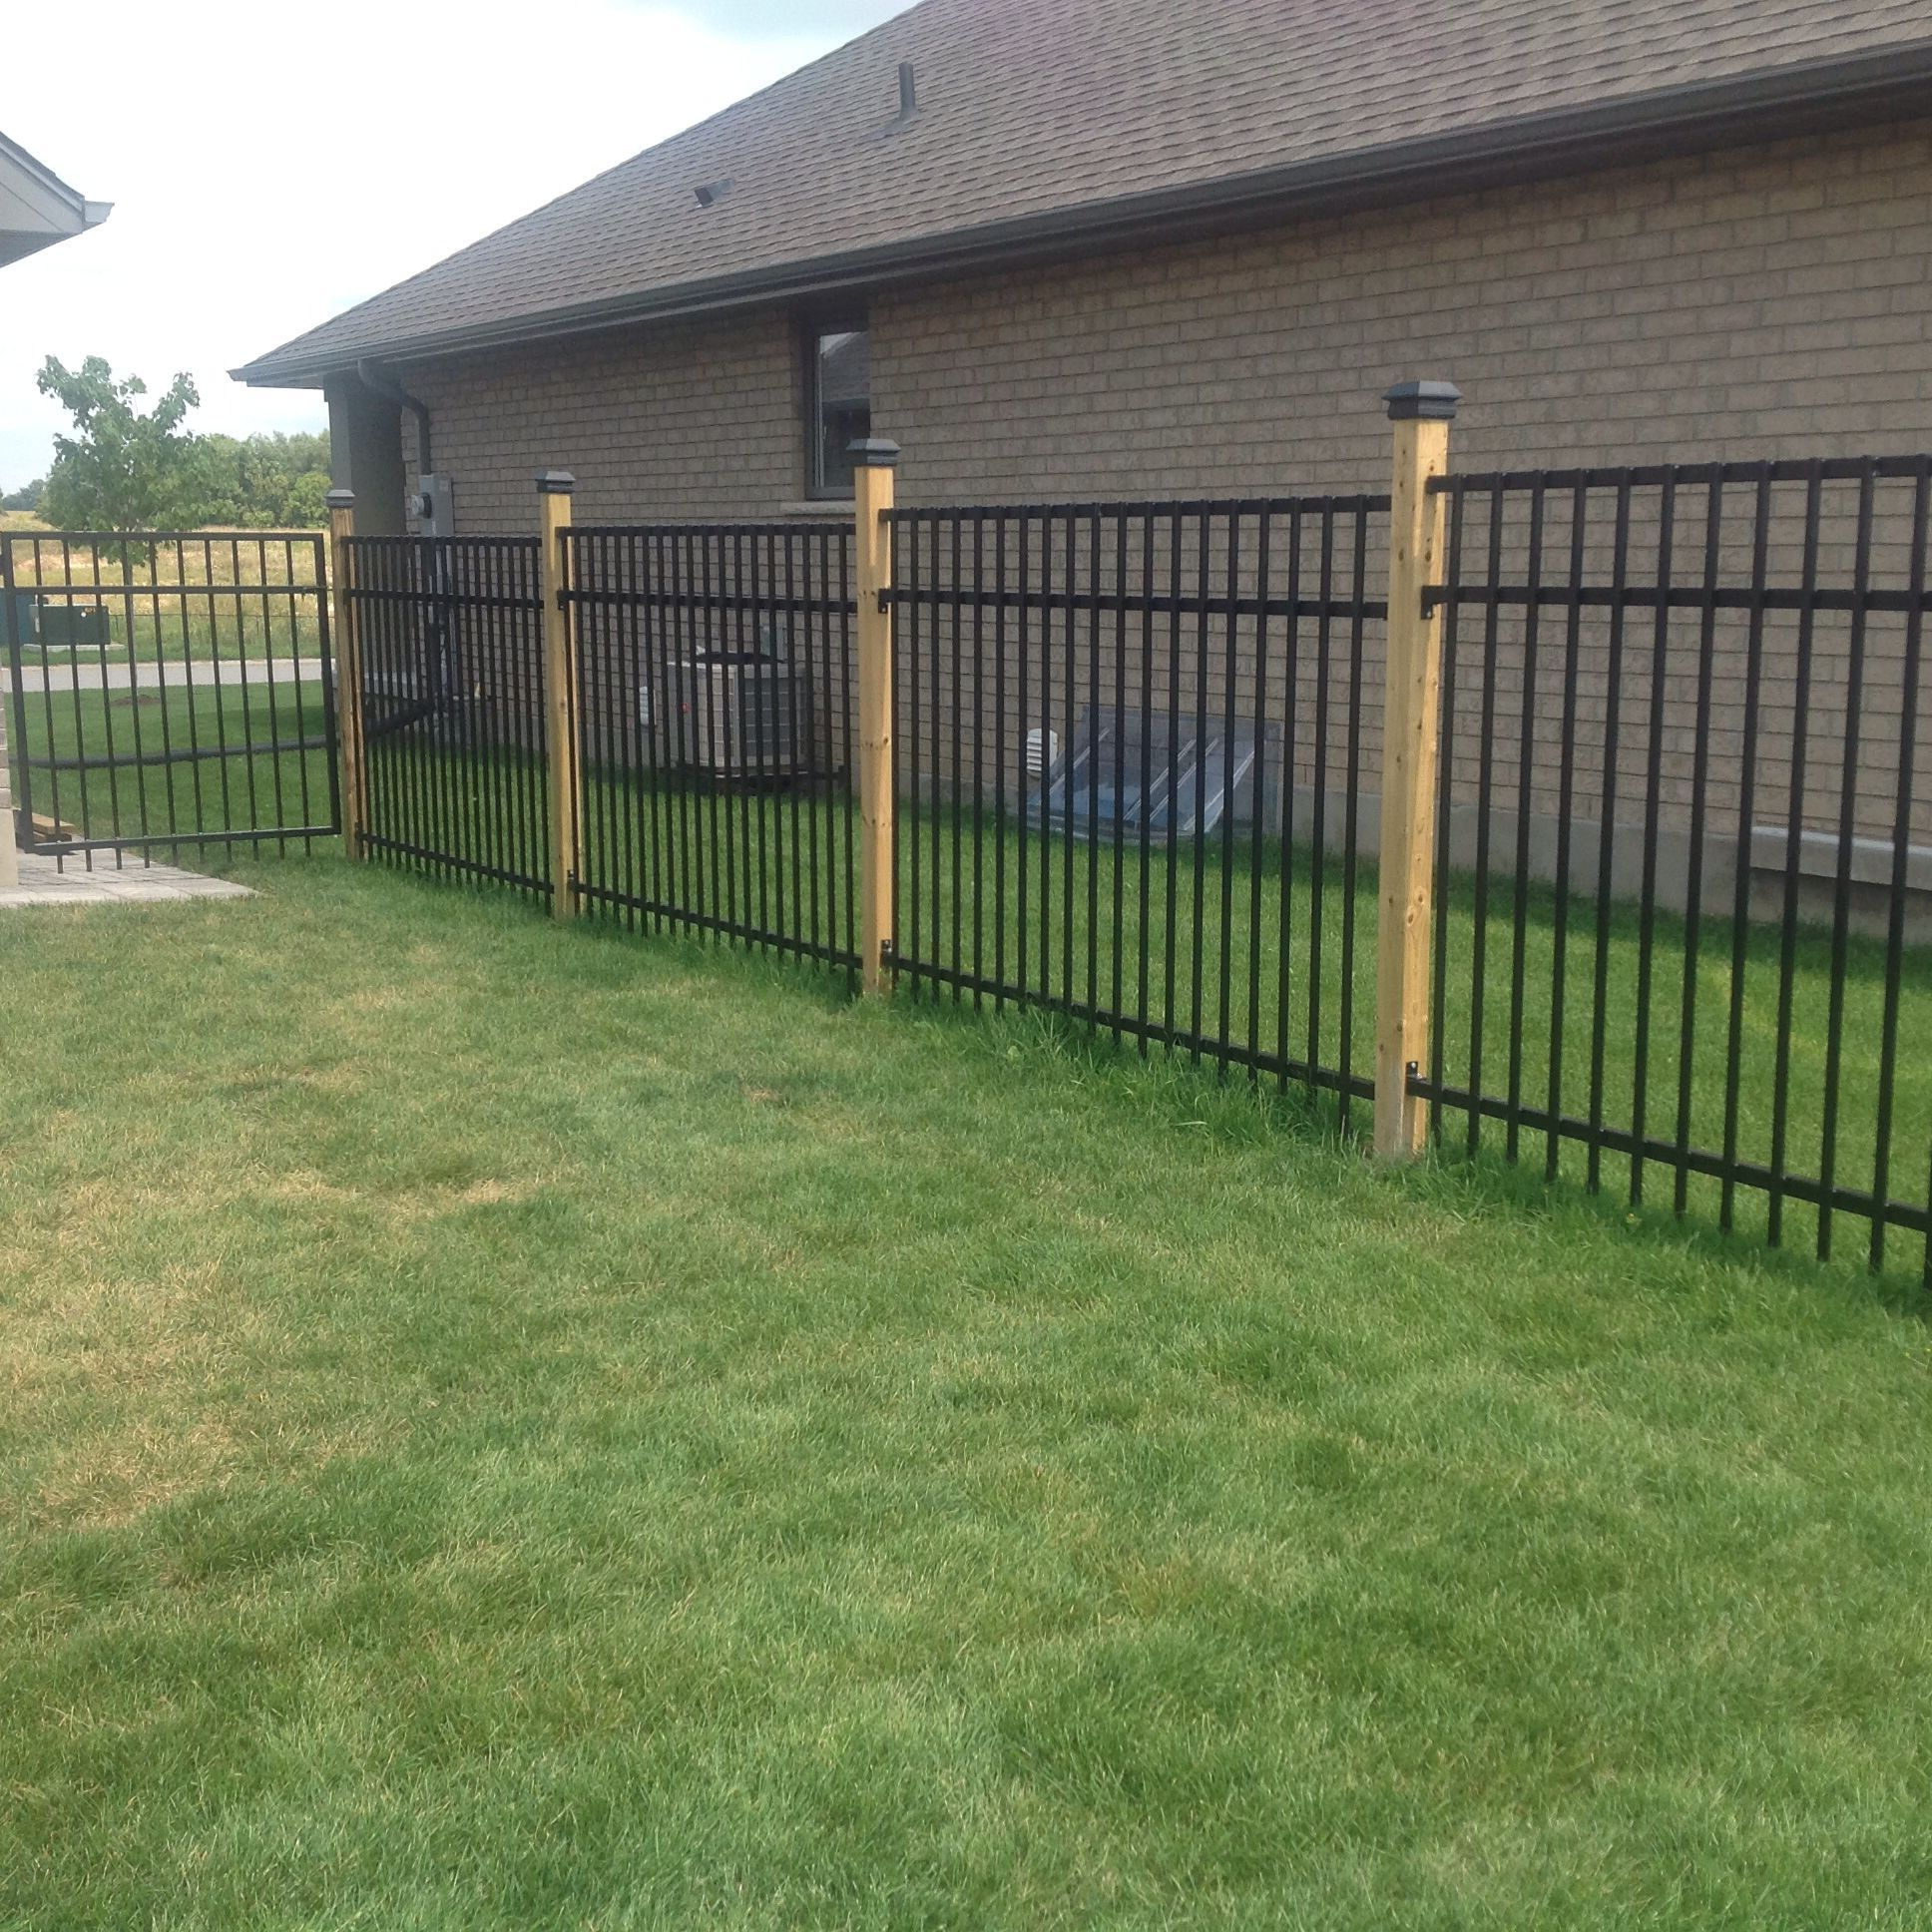 Privacy Fence Ideas For Front Yard Fenceideas Woodfenceideas Privacyfenceideas Wrought Iron Fences Wrought Iron Fence Cost Iron Fence